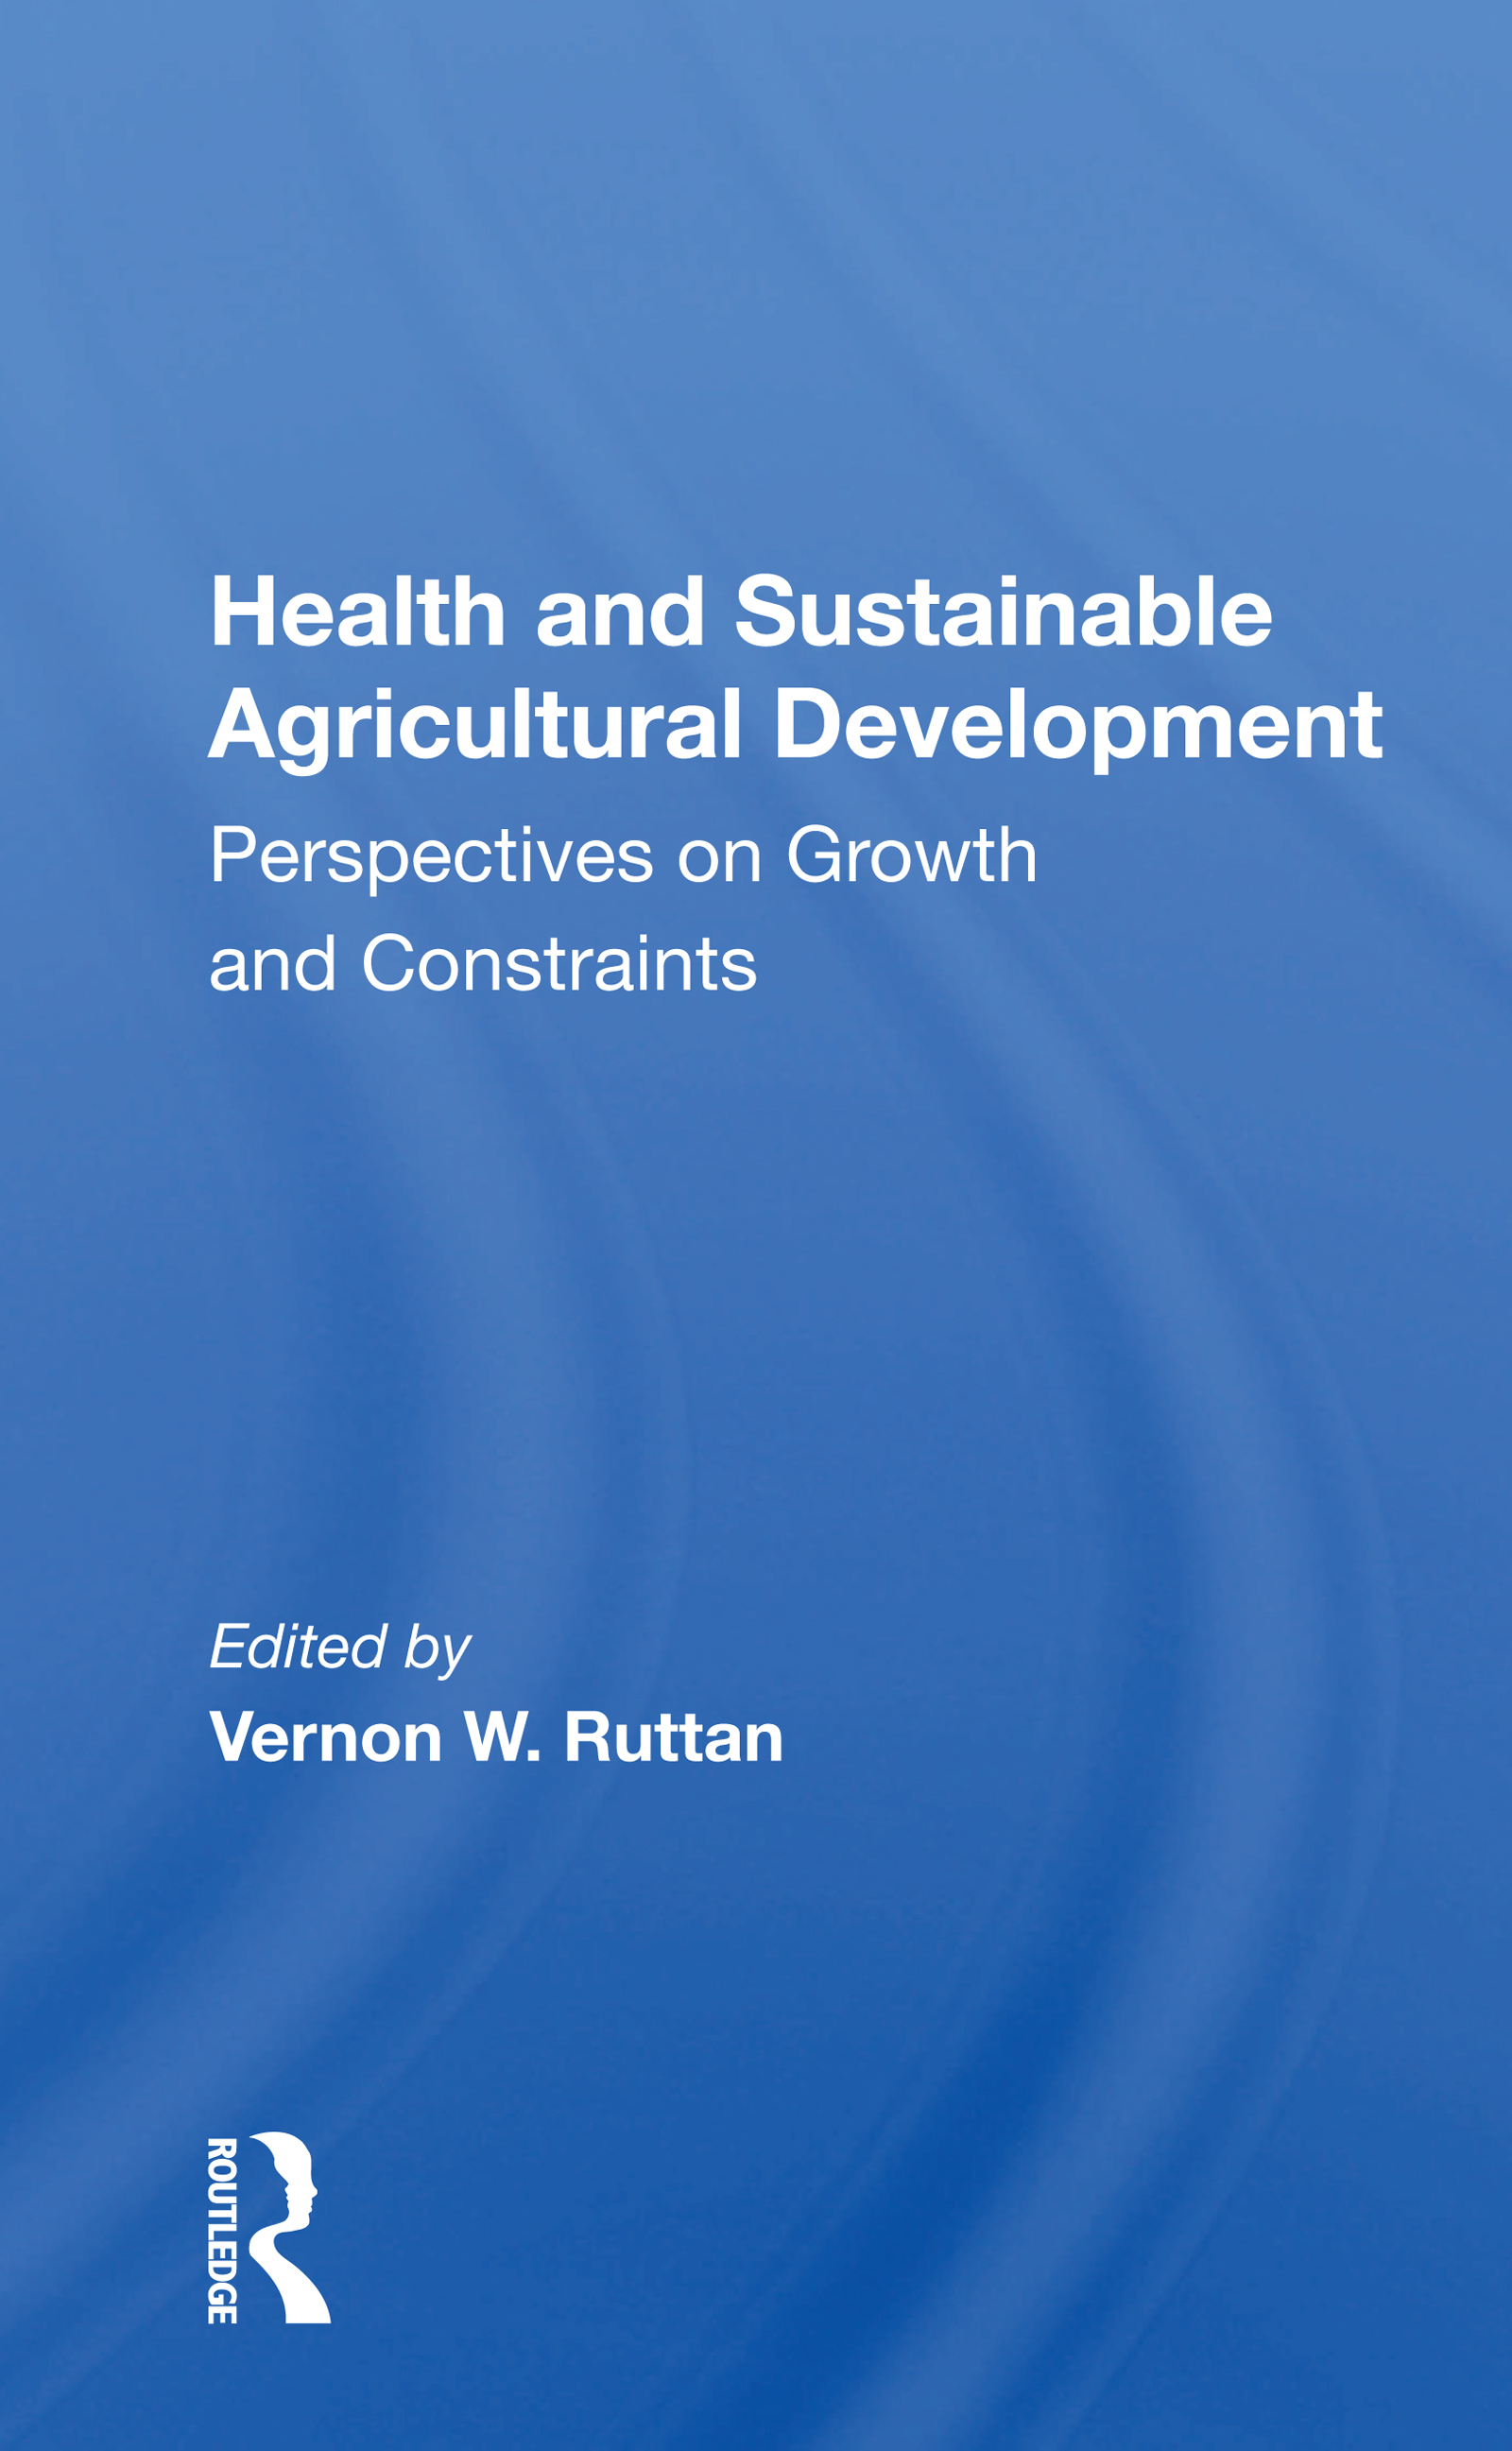 Health and Sustainable Agricultural Development